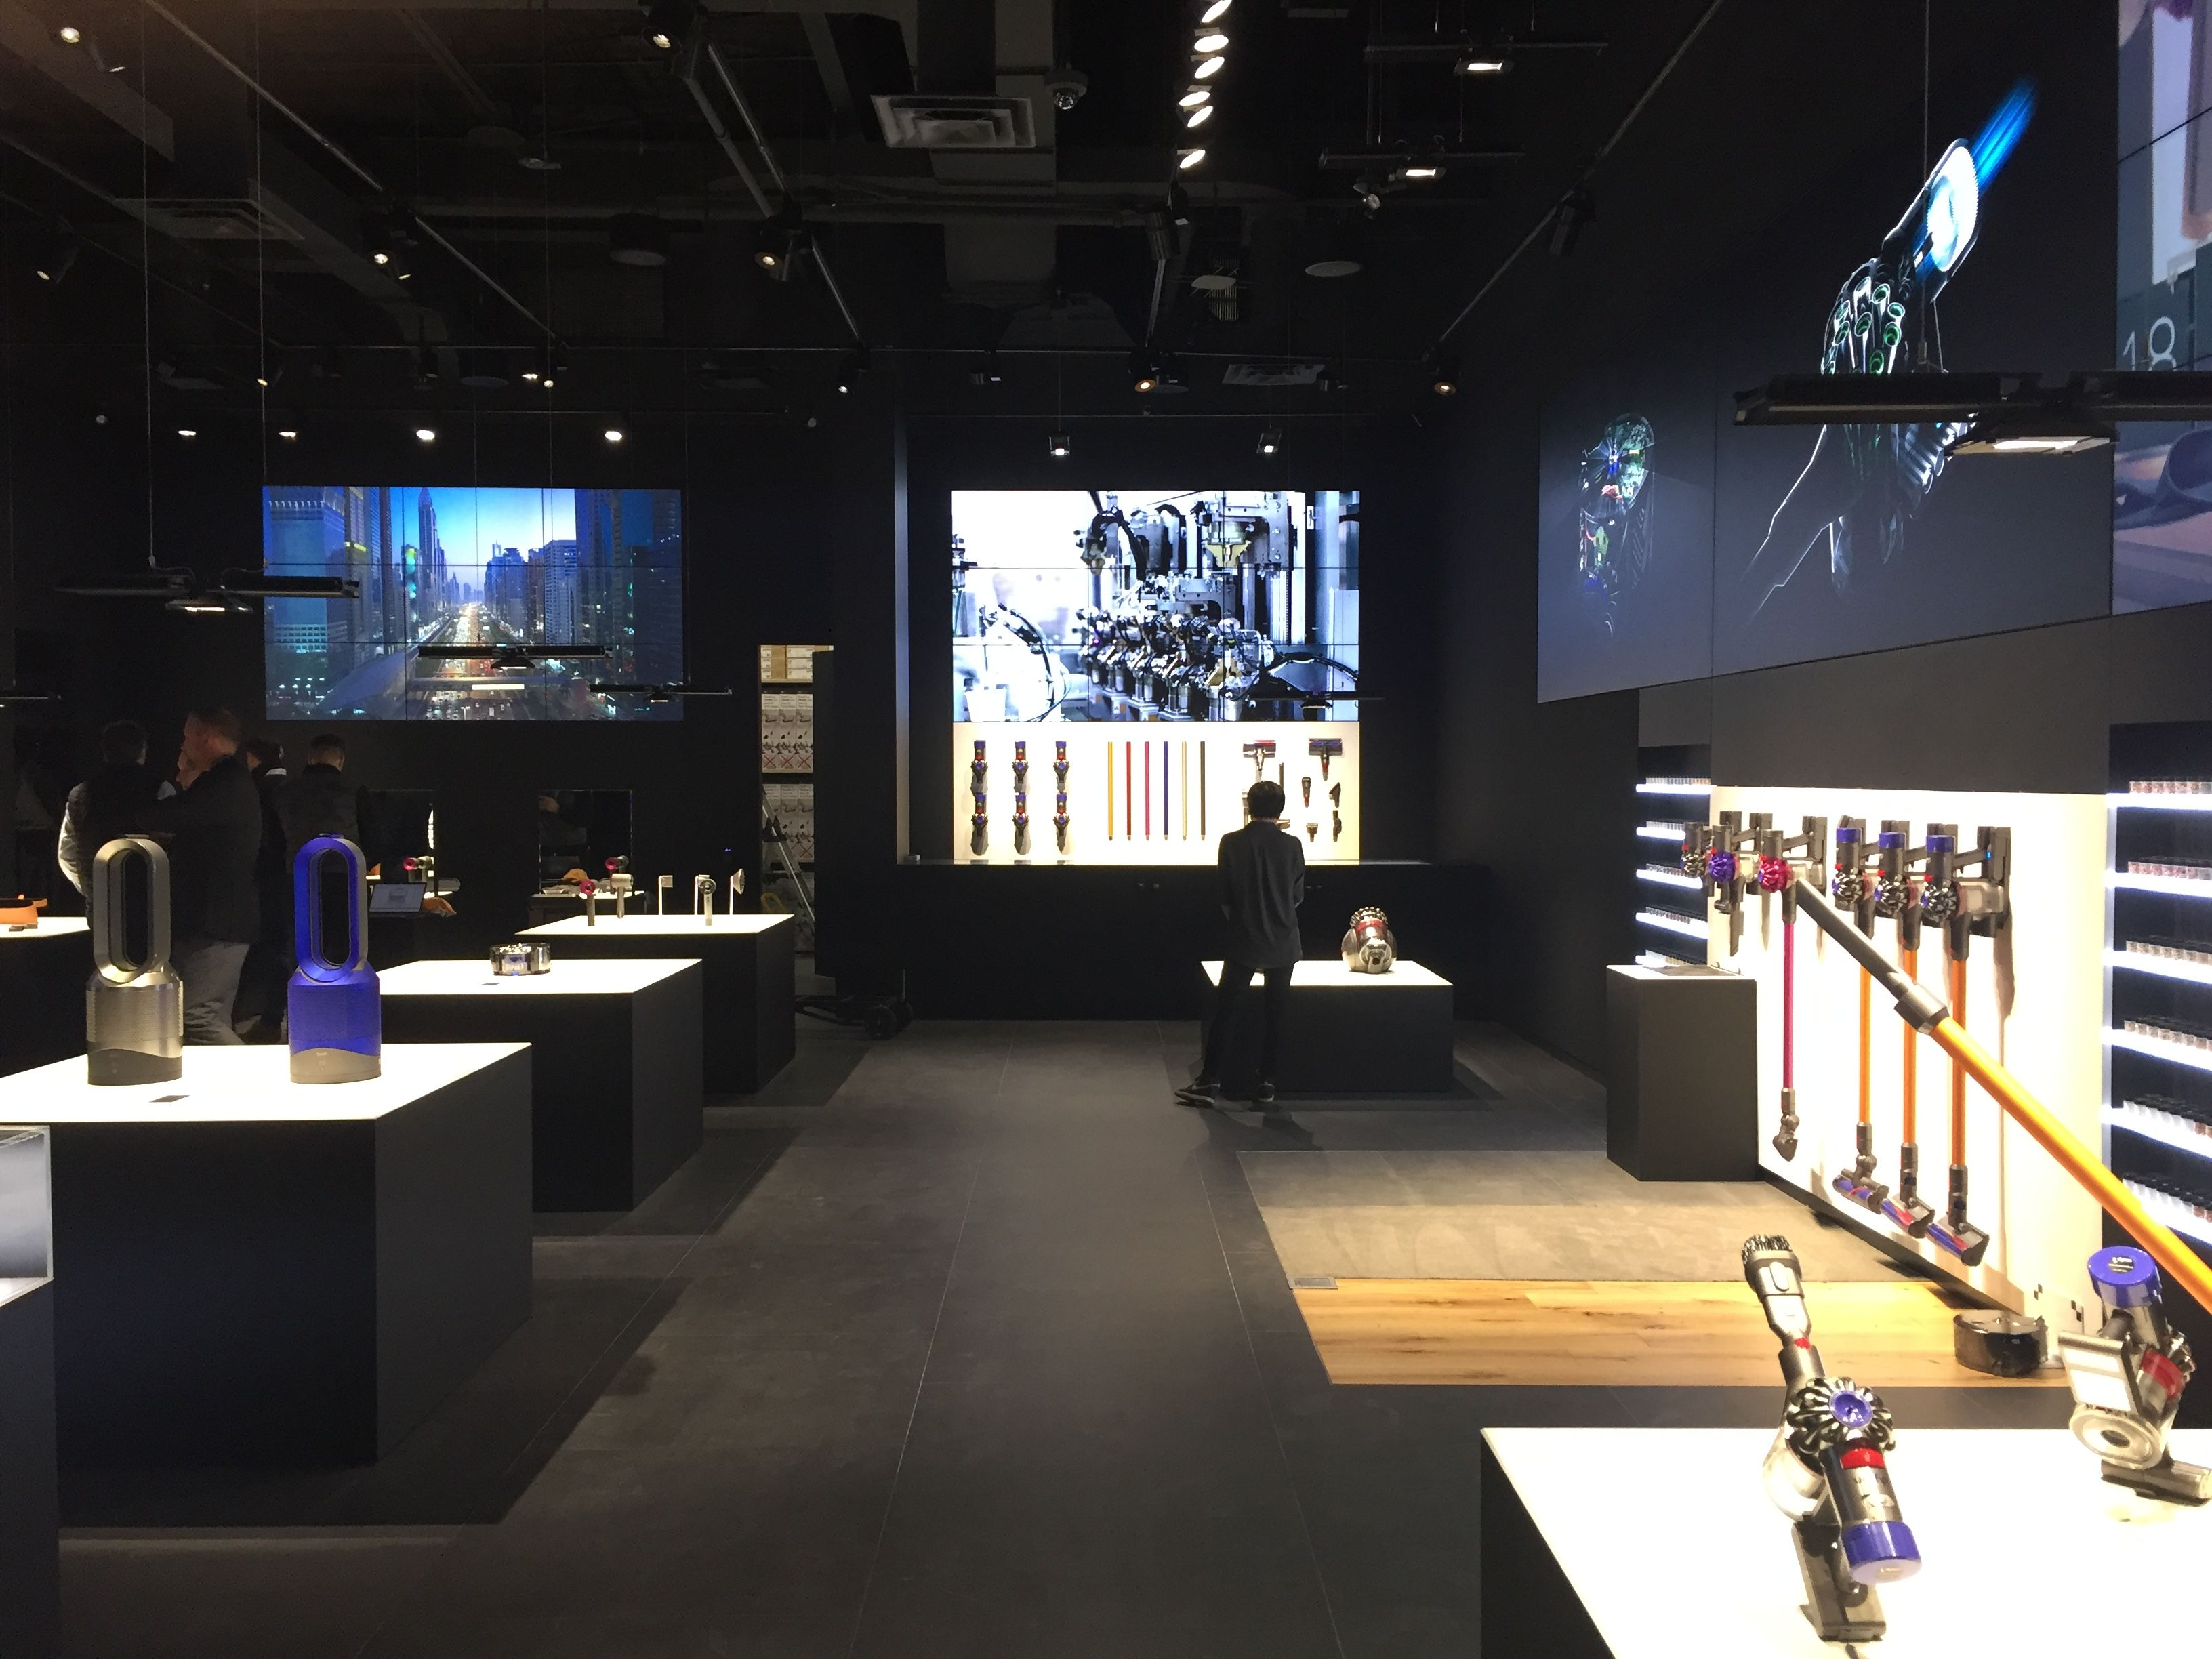 Dyson_Toronto - After NYC and San Francisco, Dyson NOW opened a new store  concept in Toronto's Yorkdale Shopping Center. A